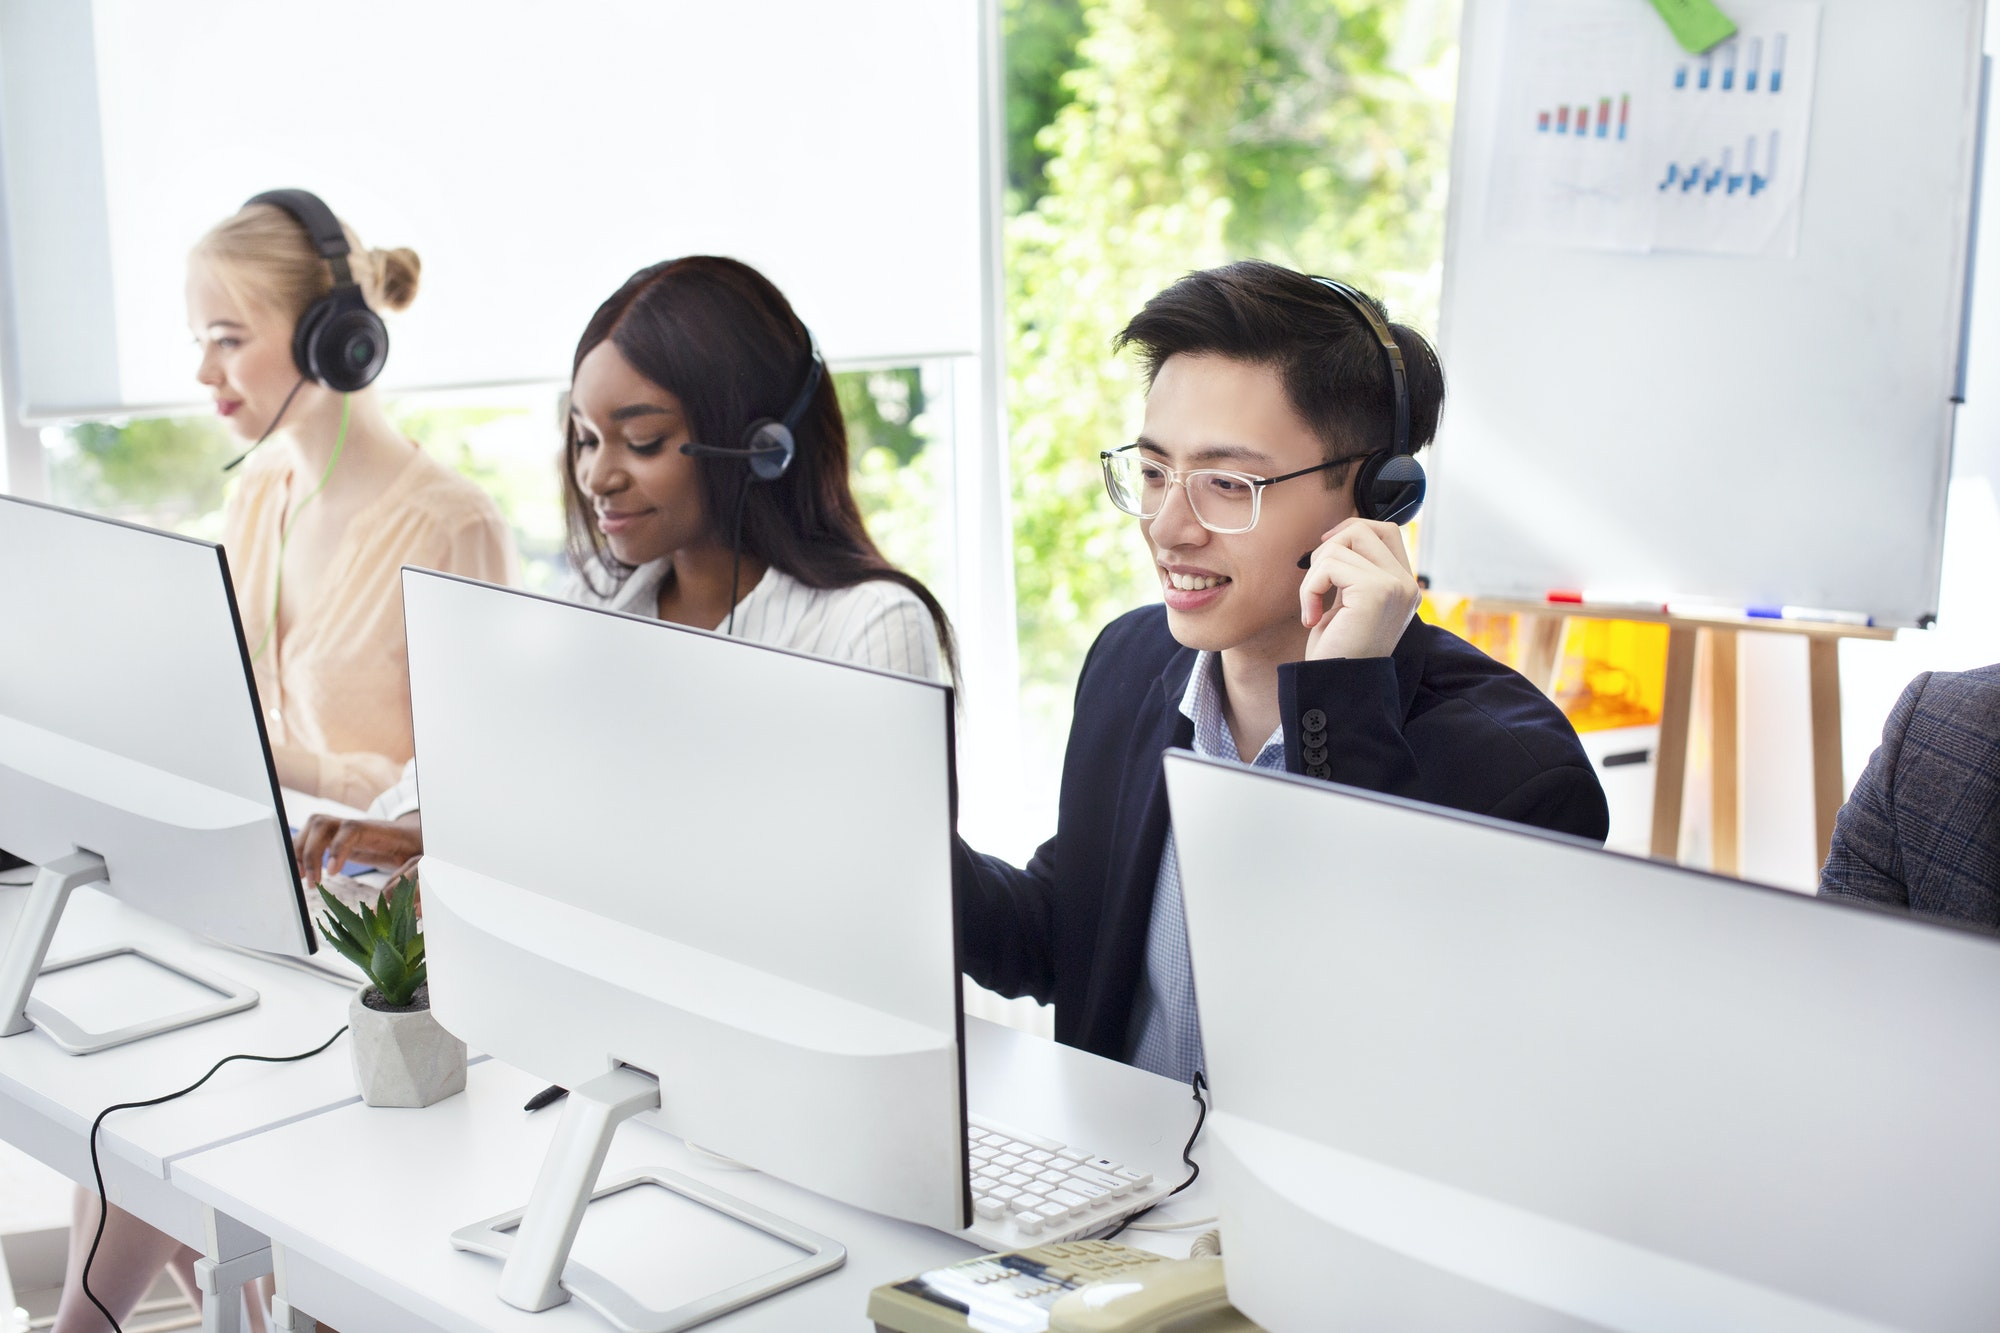 Team of helpline operators with headsets consulting clients at call center